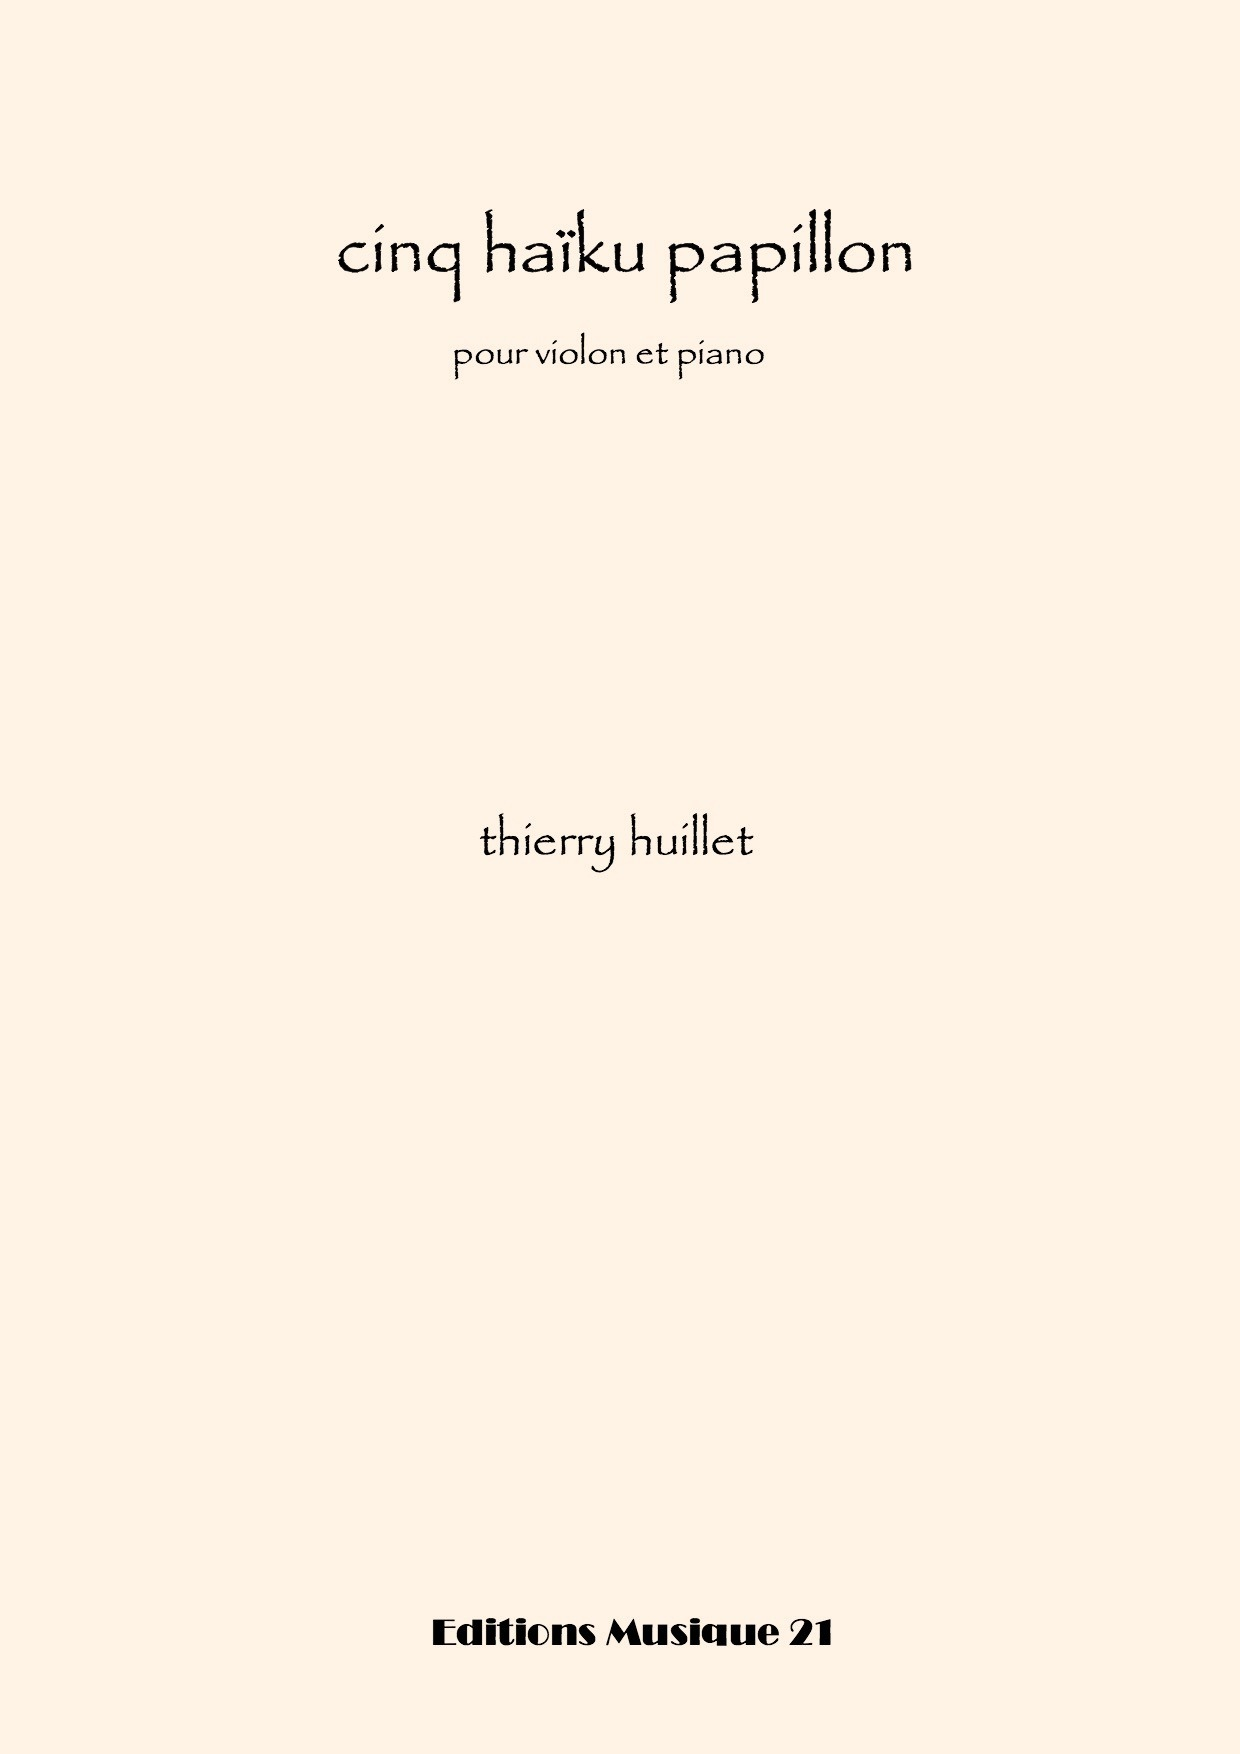 Thierry HUILLET – 5 Haiku Papillon, For Violin And Piano